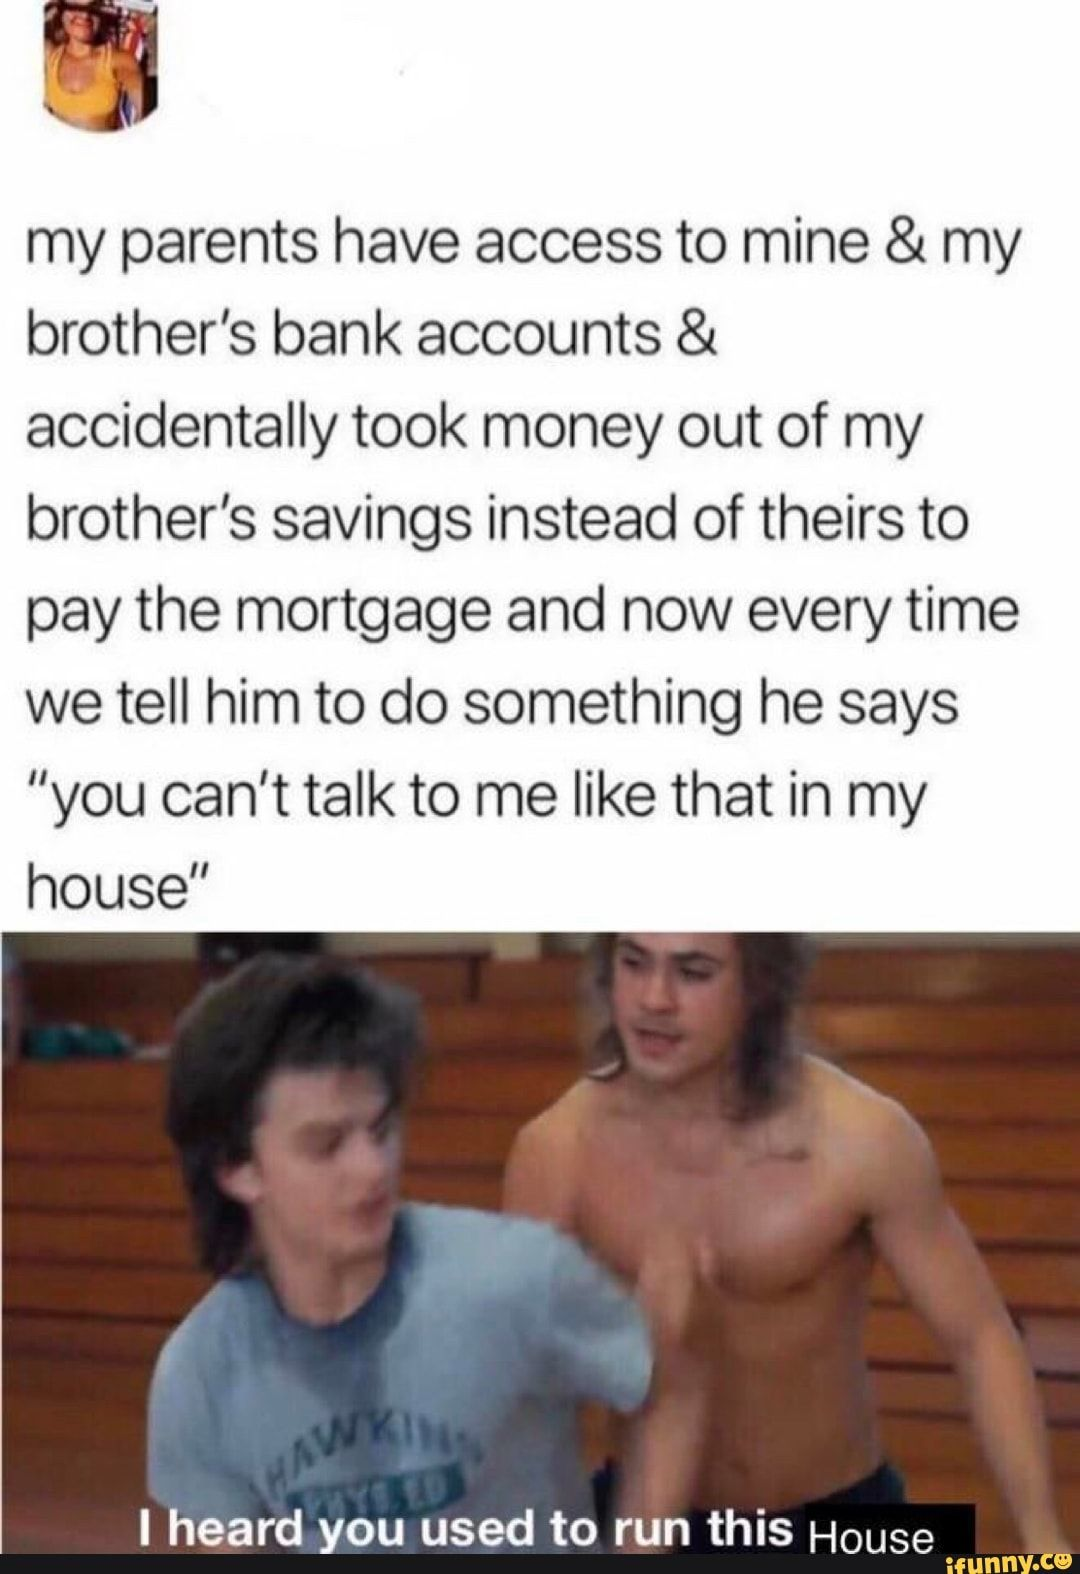 "My parents have access to mine & my brother's bank accounts & accidentally took money out of my brother's savings instead of theirs to pay the mortgage and now every time we tell him to do something he says ""you can't talk to me like that in my house"" I heard ou used to run this H   iFunny ) is part of Funny jokes - My parents have access to mine & my brother's bank accounts & accidentally took money out of my brother's savings instead of theirs to pay the mortgage and now every time we tell him to do something he says ""you can't talk to me like that in my house"" I heard ou used to run this H    popular memes on the site iFunny co"